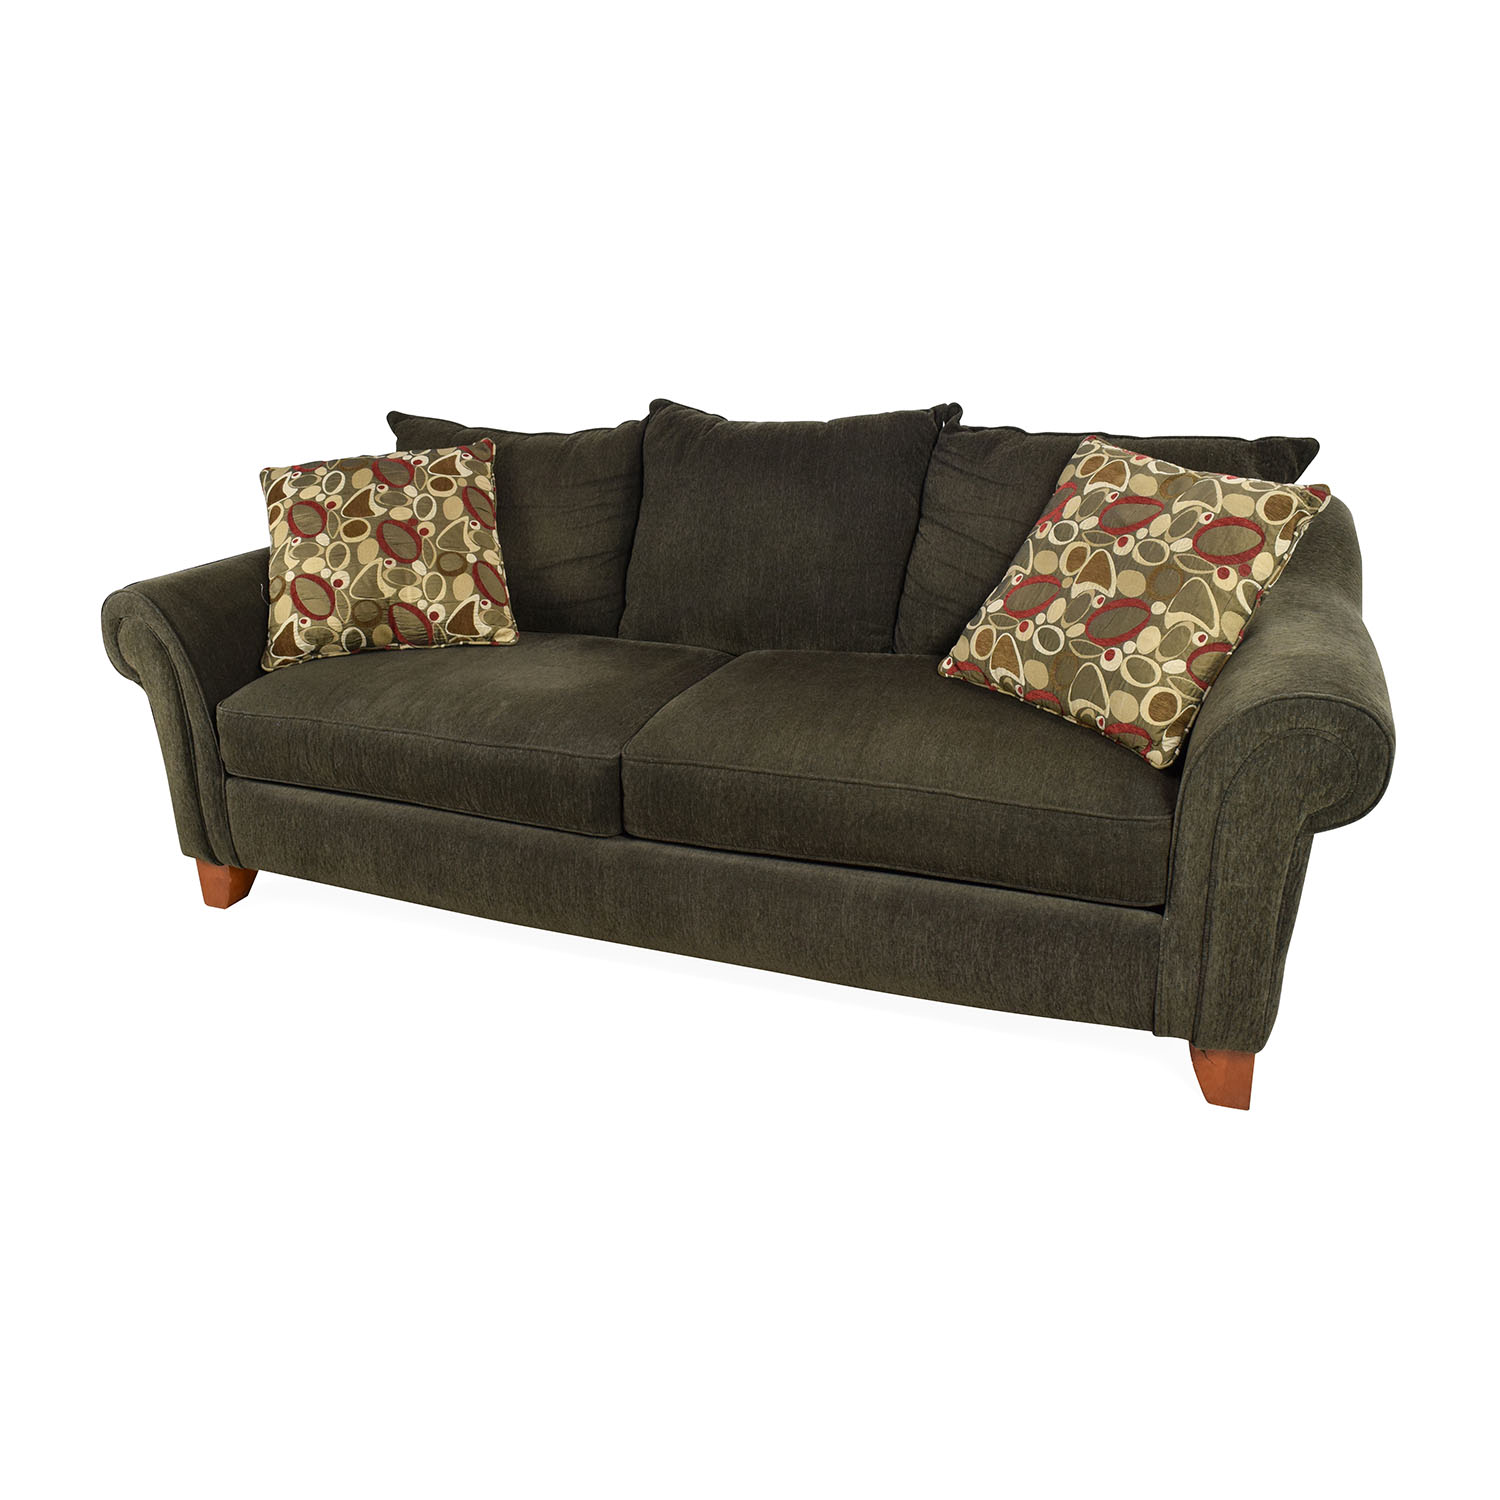 raymour and flanigan sofa slipcovers craigslist sectional sofas couches leather